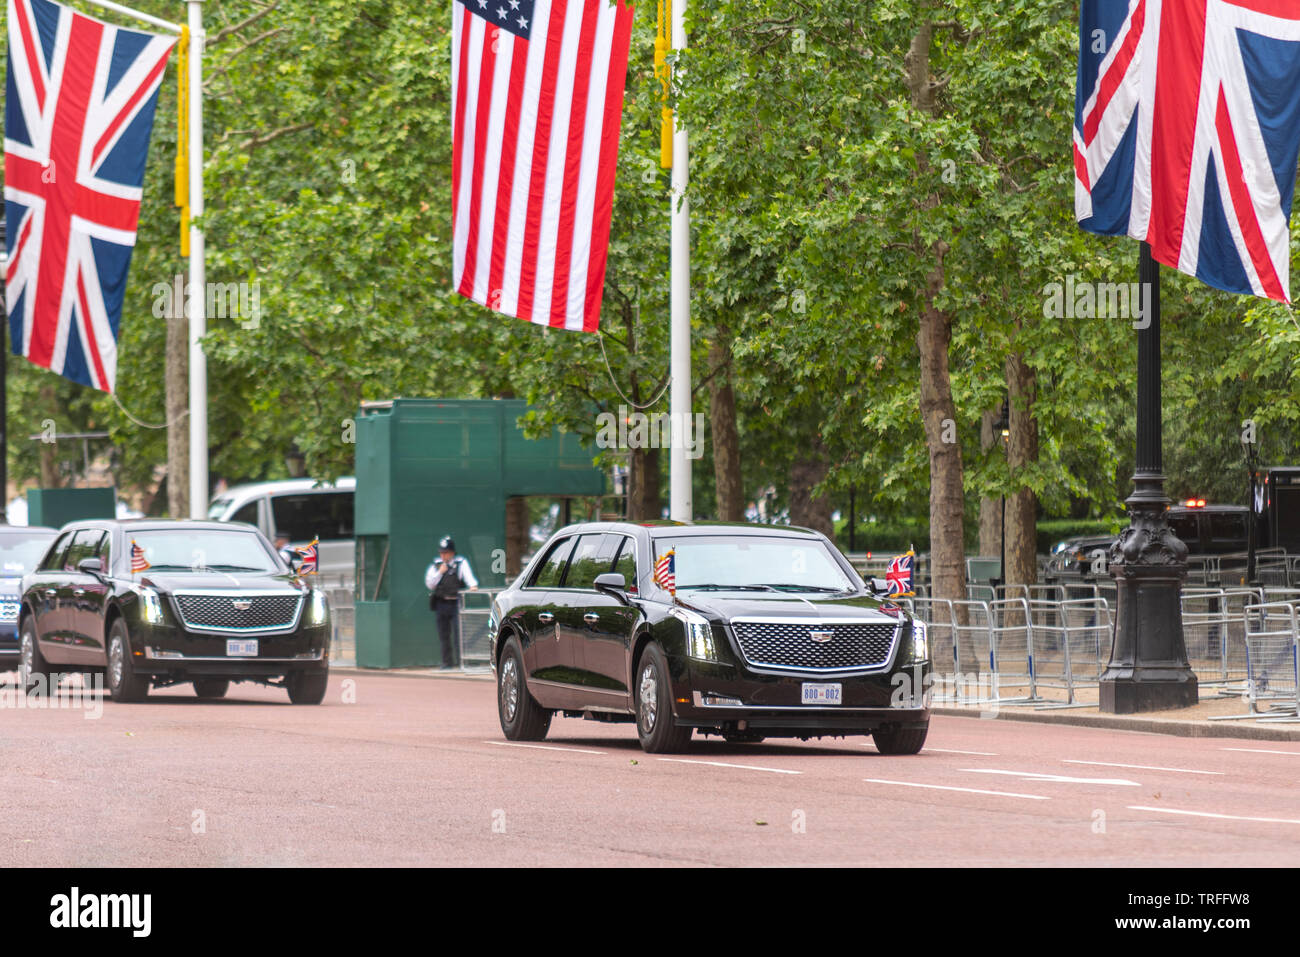 us-president-donald-trump-being-driven-along-the-mall-london-uk-in-the-beast-car-with-few-people-watching-no-fans-presidential-motorcade-TRFFW8.jpg